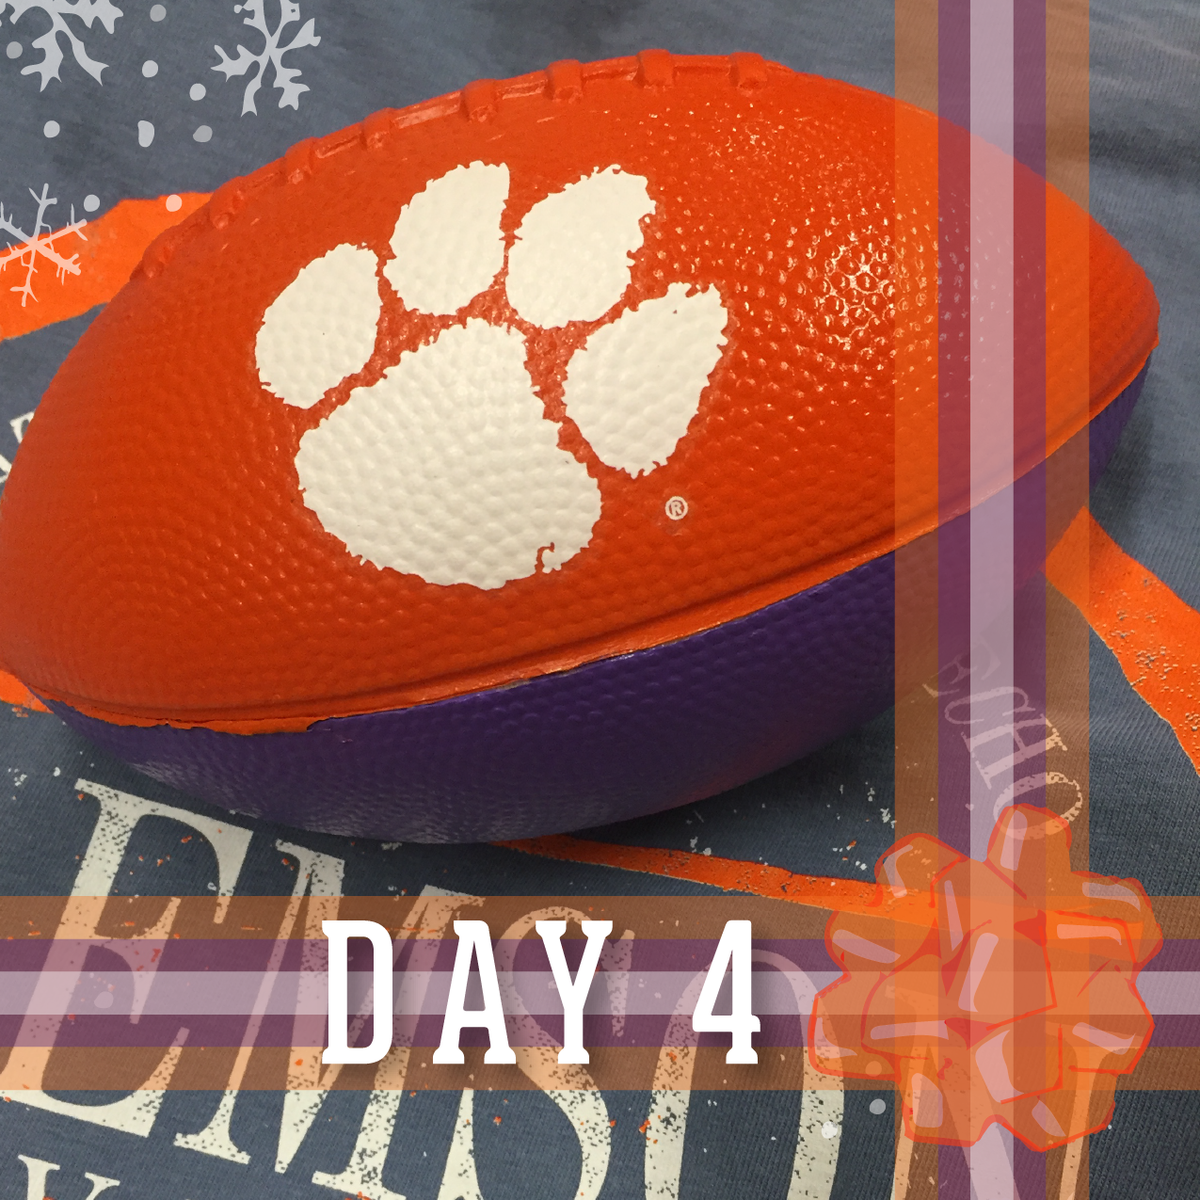 Our 4th 12 #DaysOfChristmas giveaway is here! Retweet for your chance to win this Clemson football #ClemsonChristmas https://t.co/KolxkT6gaw